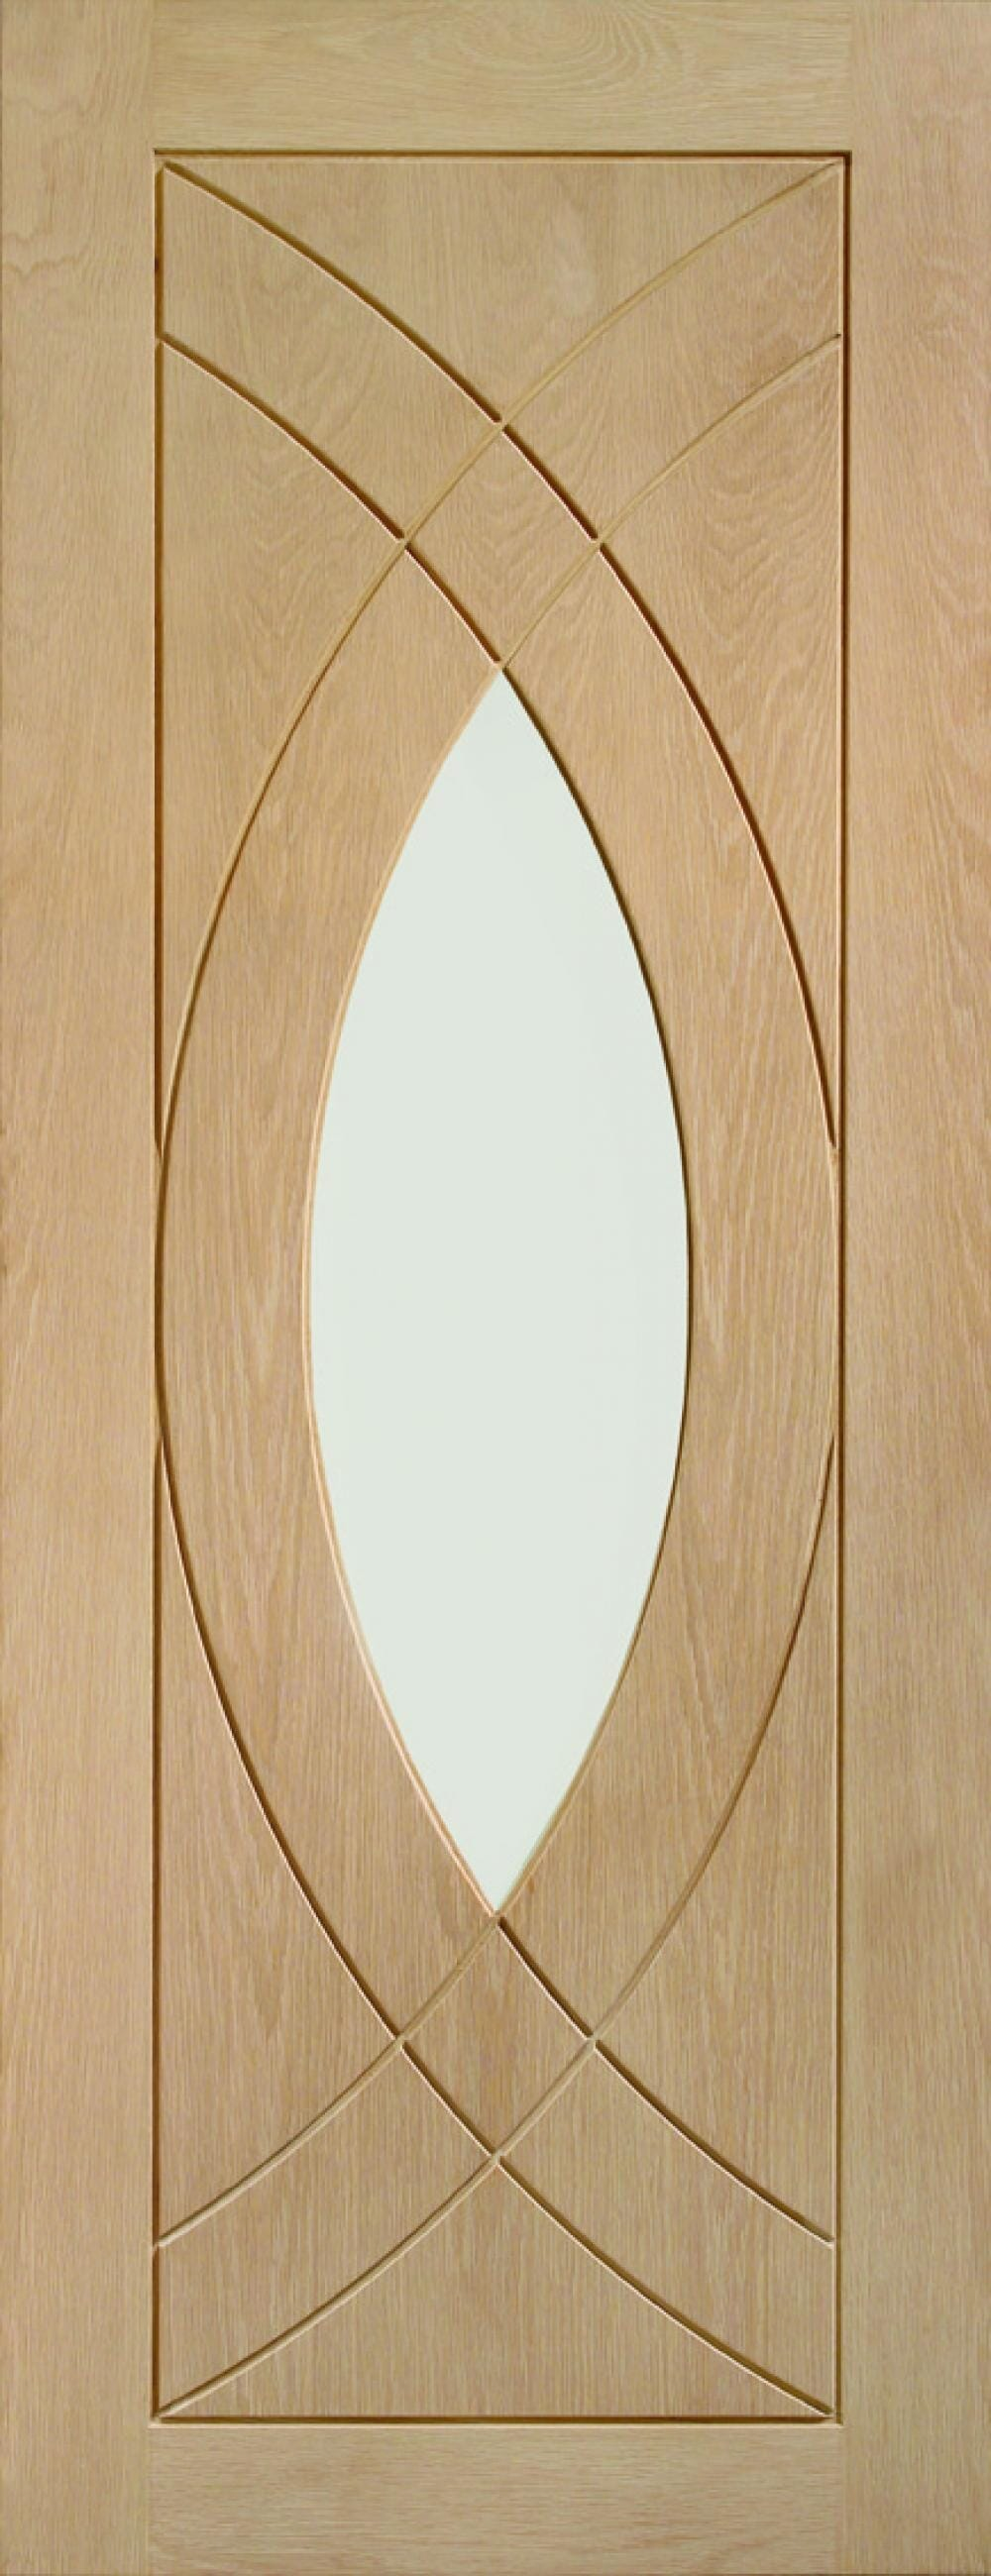 Treviso Oak - Prefinished Clear Glass Image